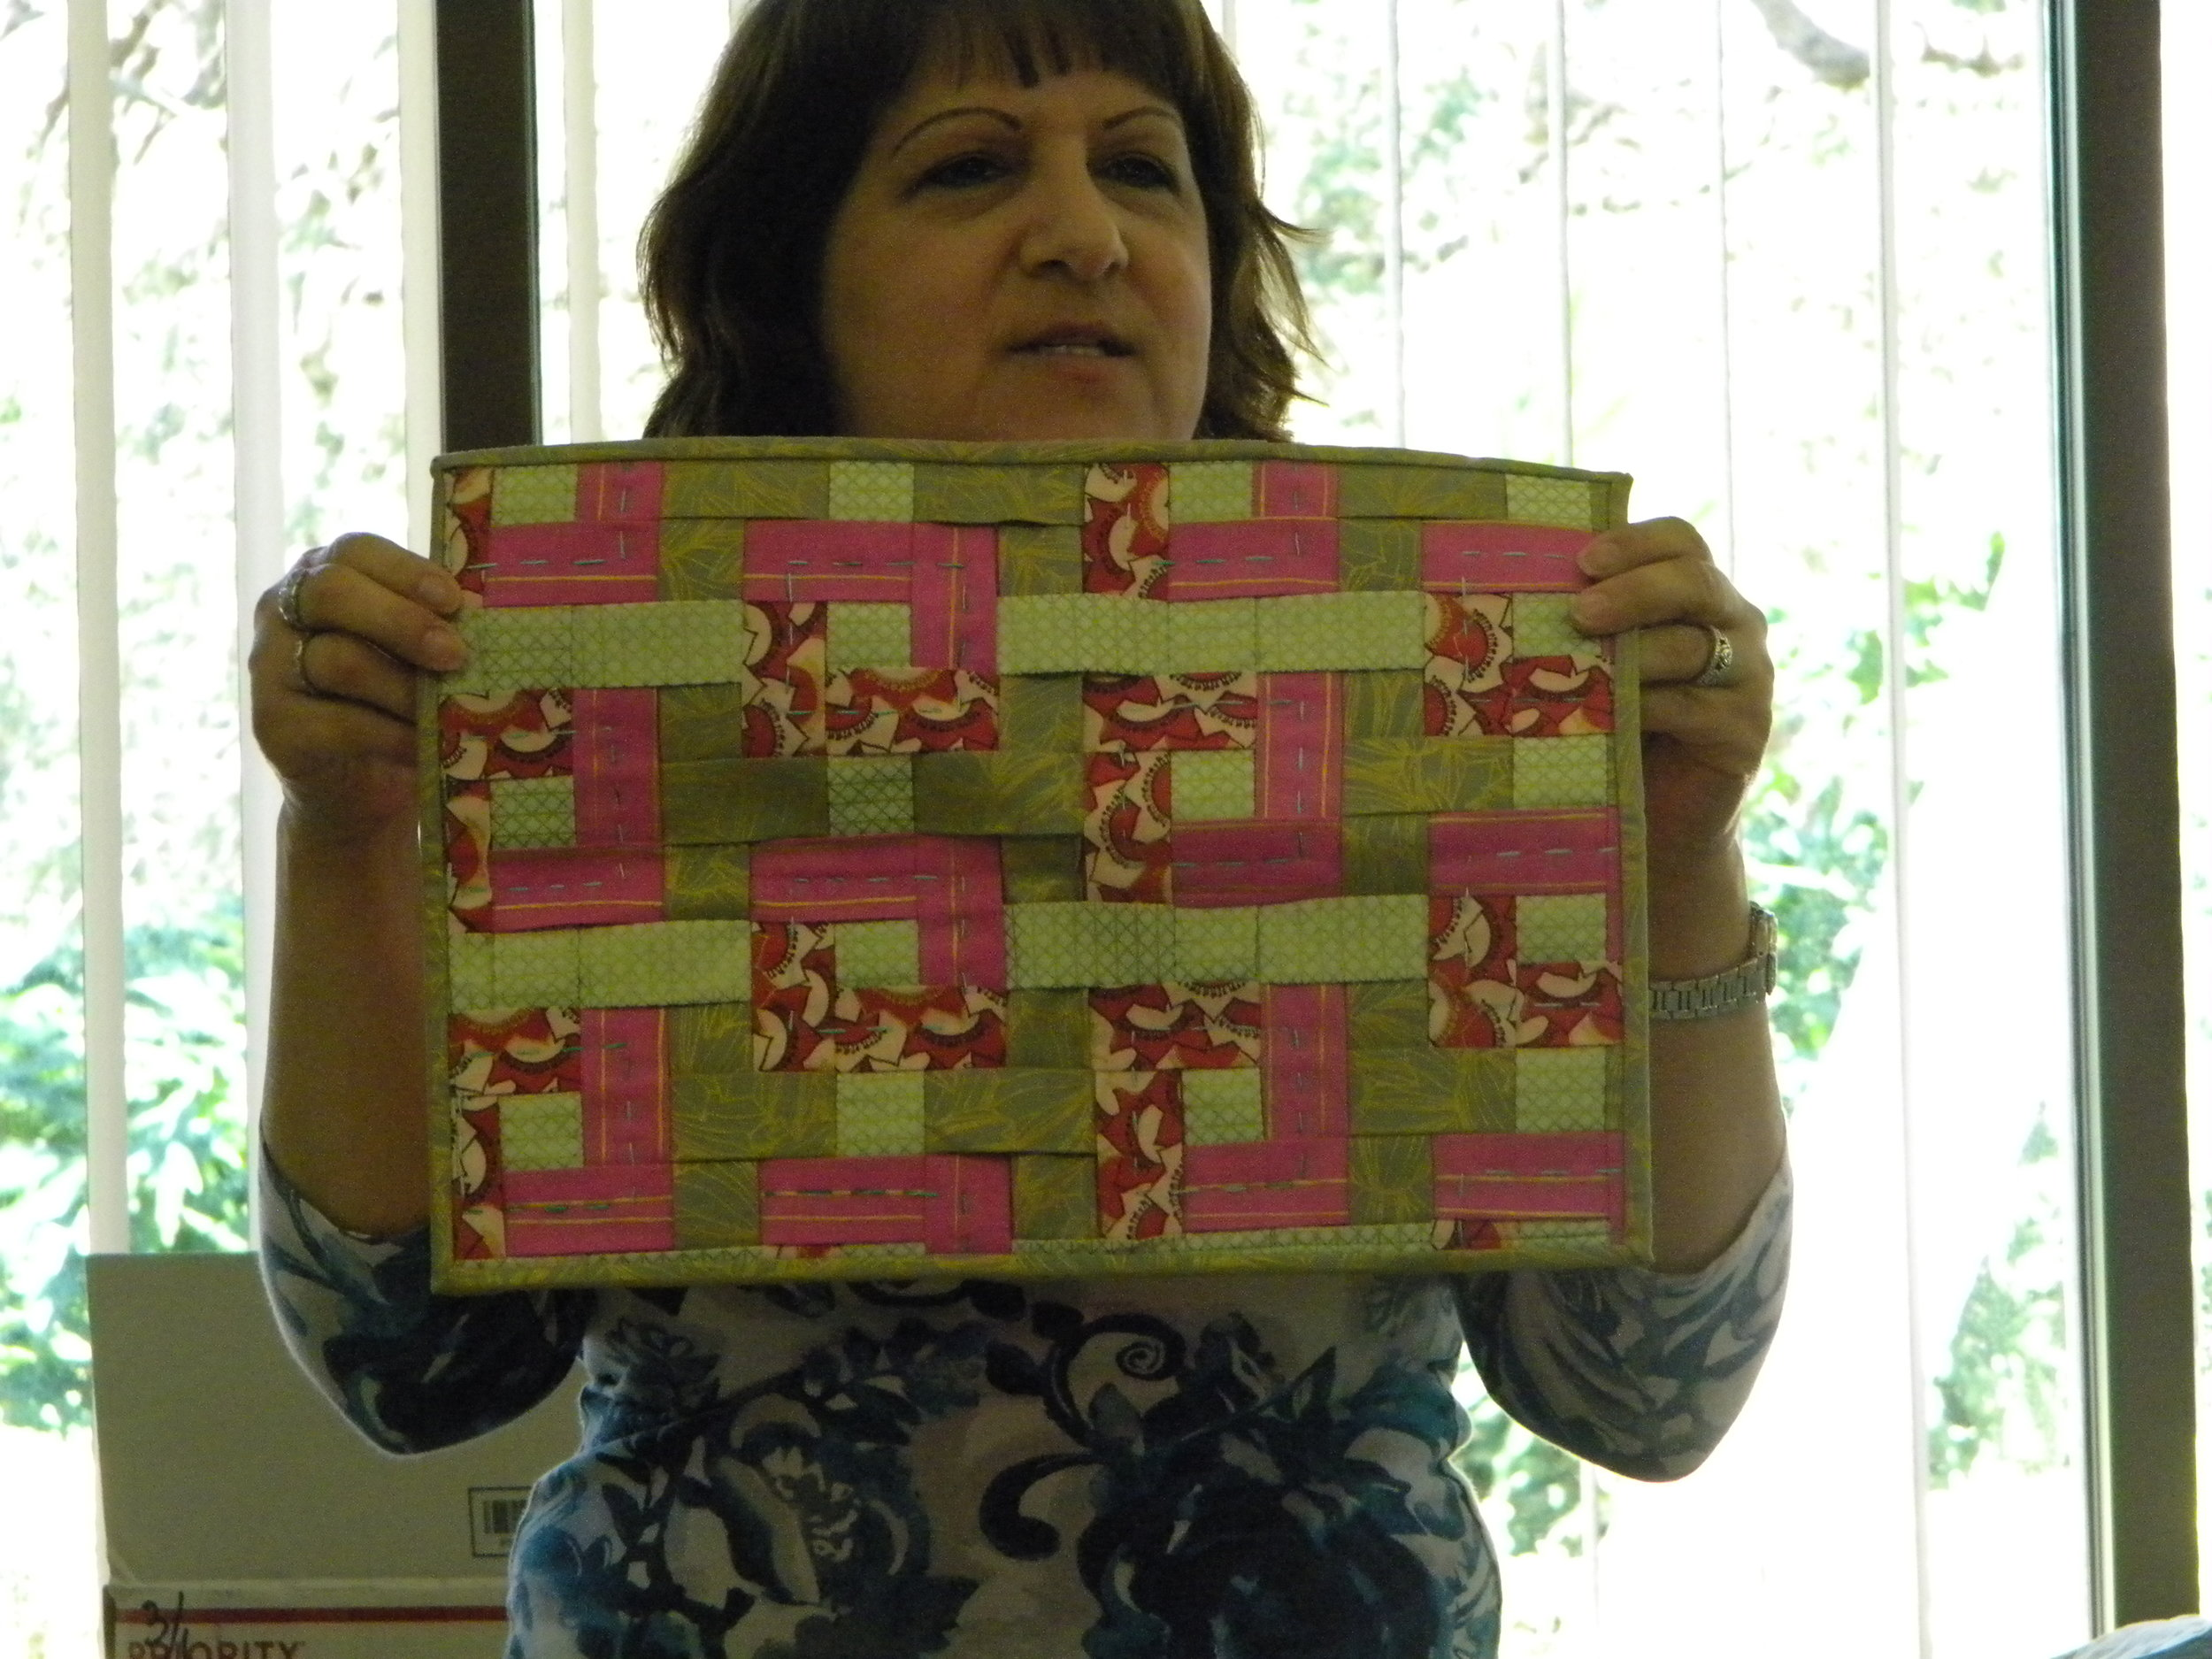 LoriAnn and her woven project. Great job!